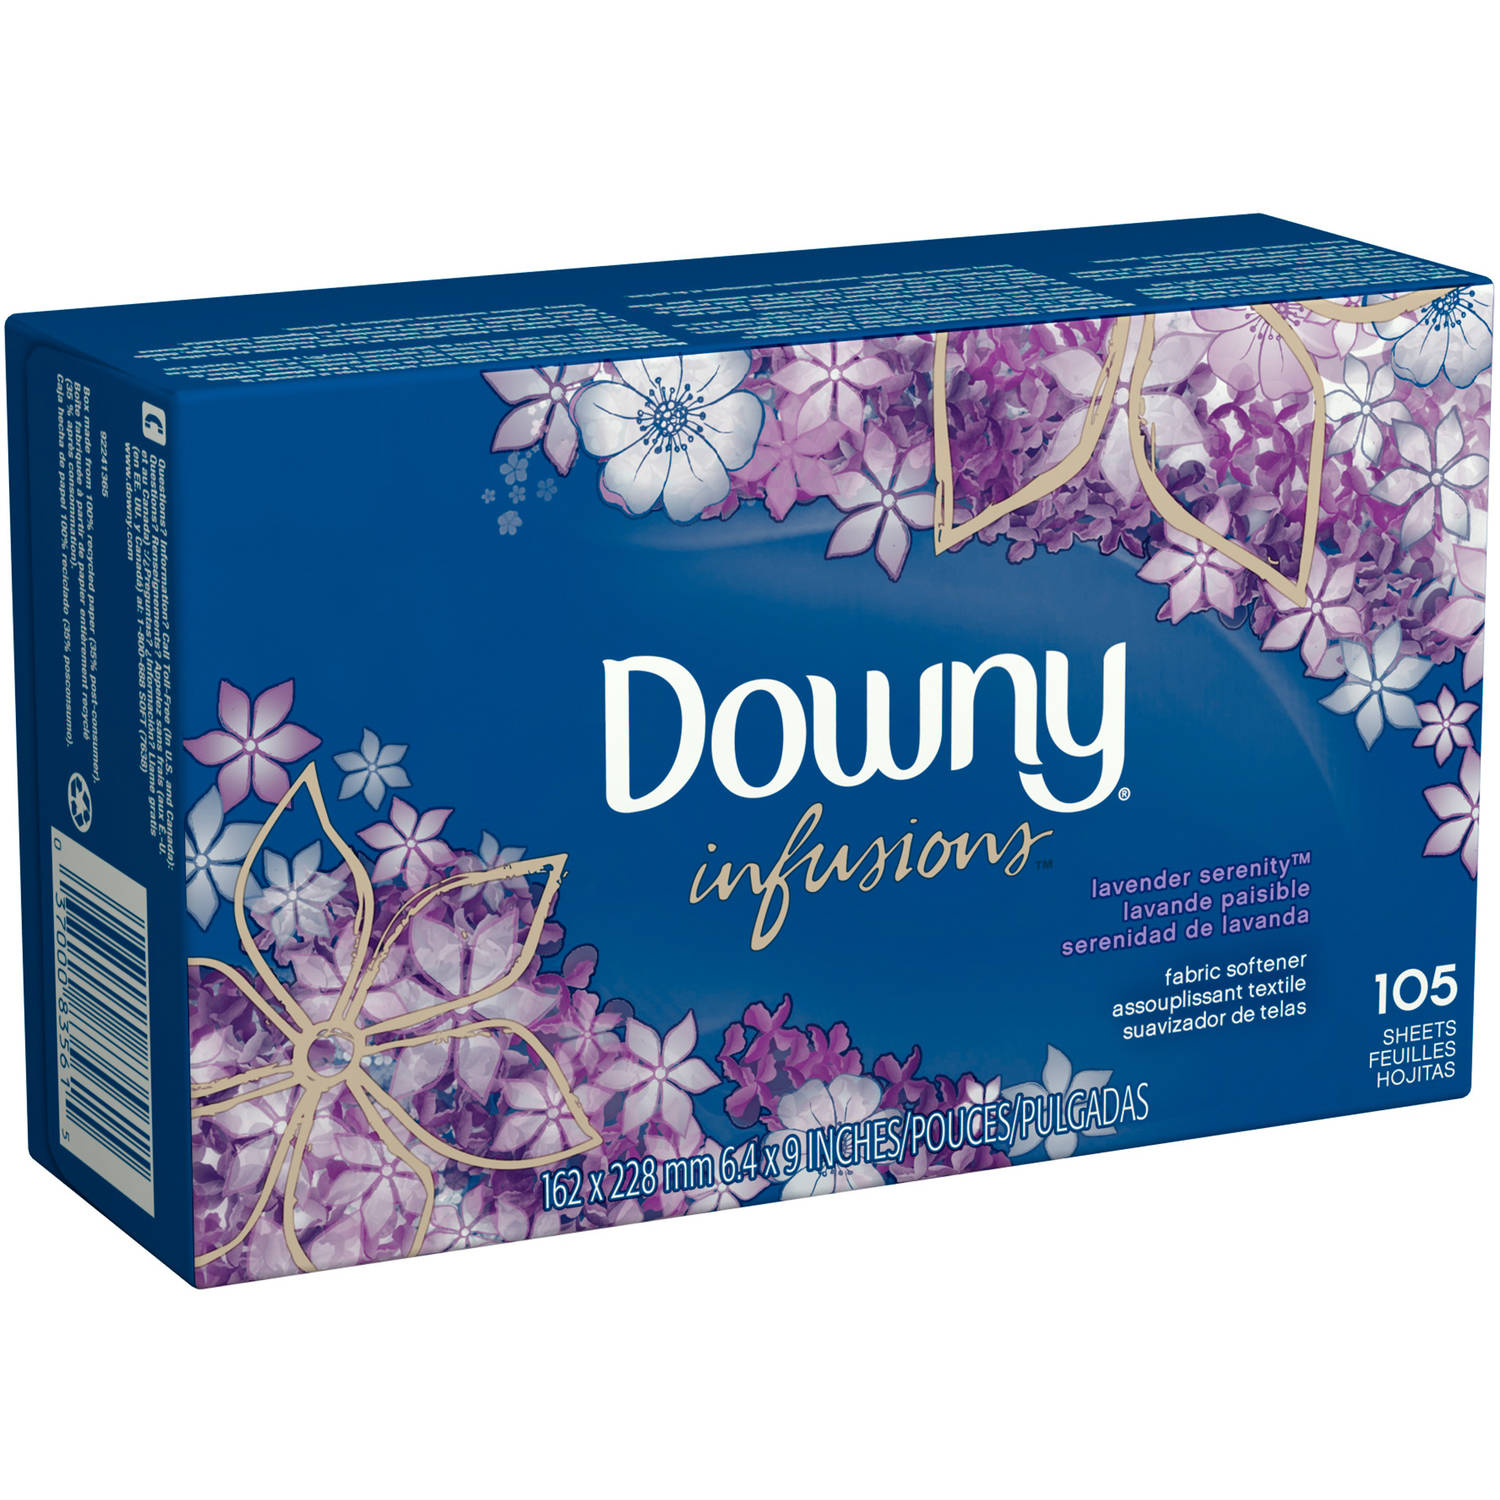 Ultra Downy Infusions Lavender Serenity Fabric Softener Sheets, 105 sheets